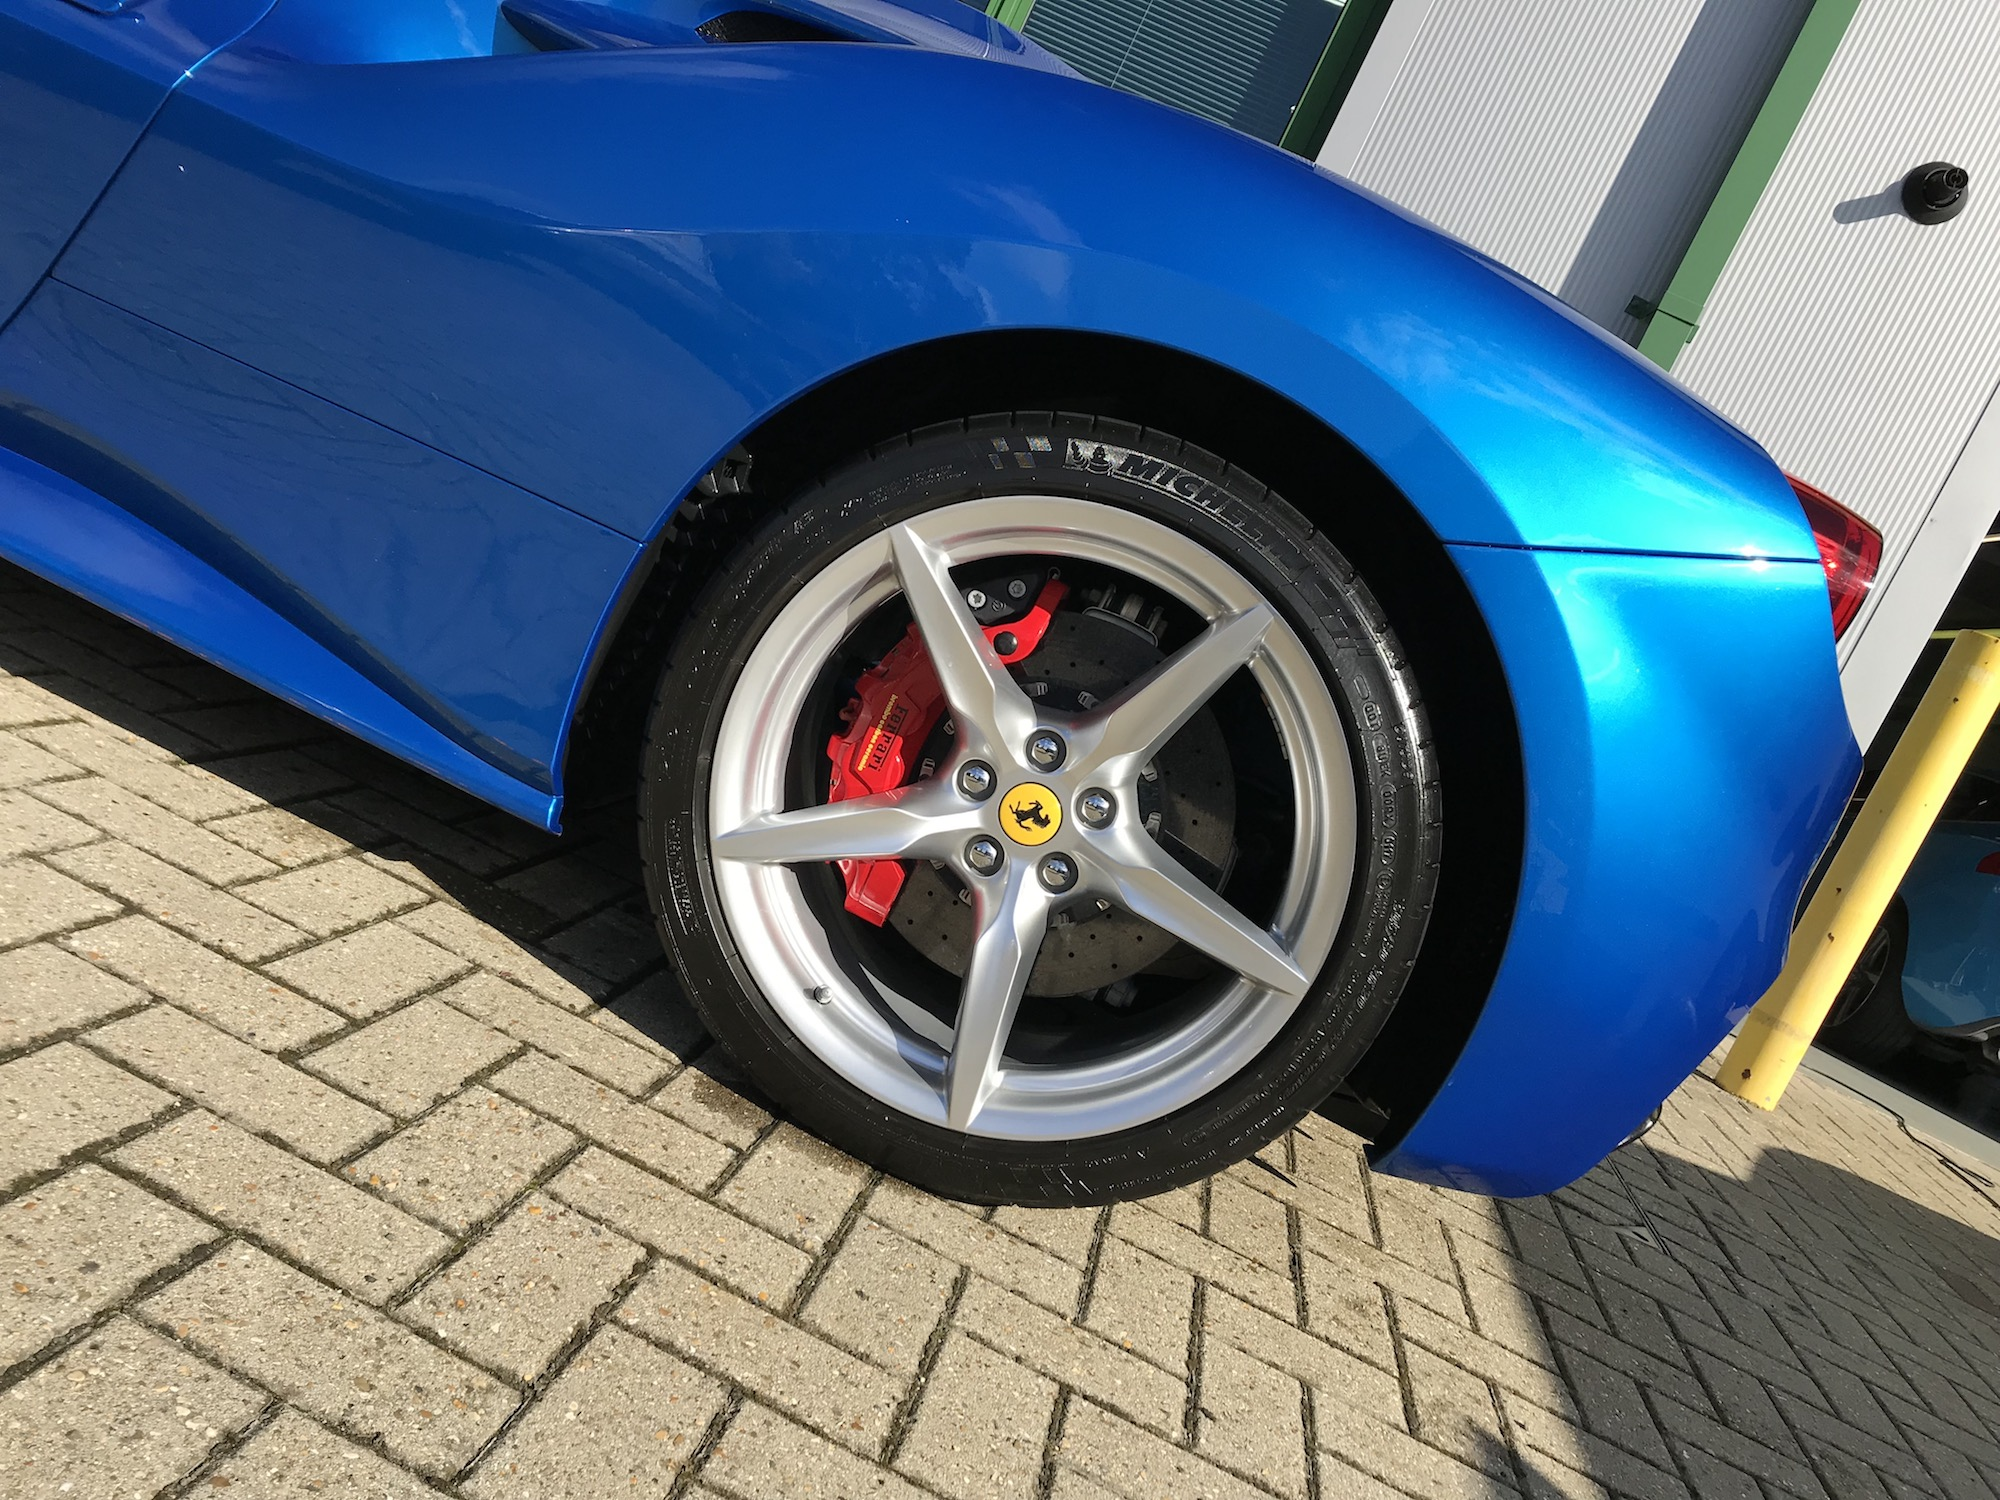 One Day Detail. An ideal service for those wanting their vehicles prepared to concourse condition, protected and maintained. See mmvaleting for a one day detail for you vehicle in Buckinghamshire.